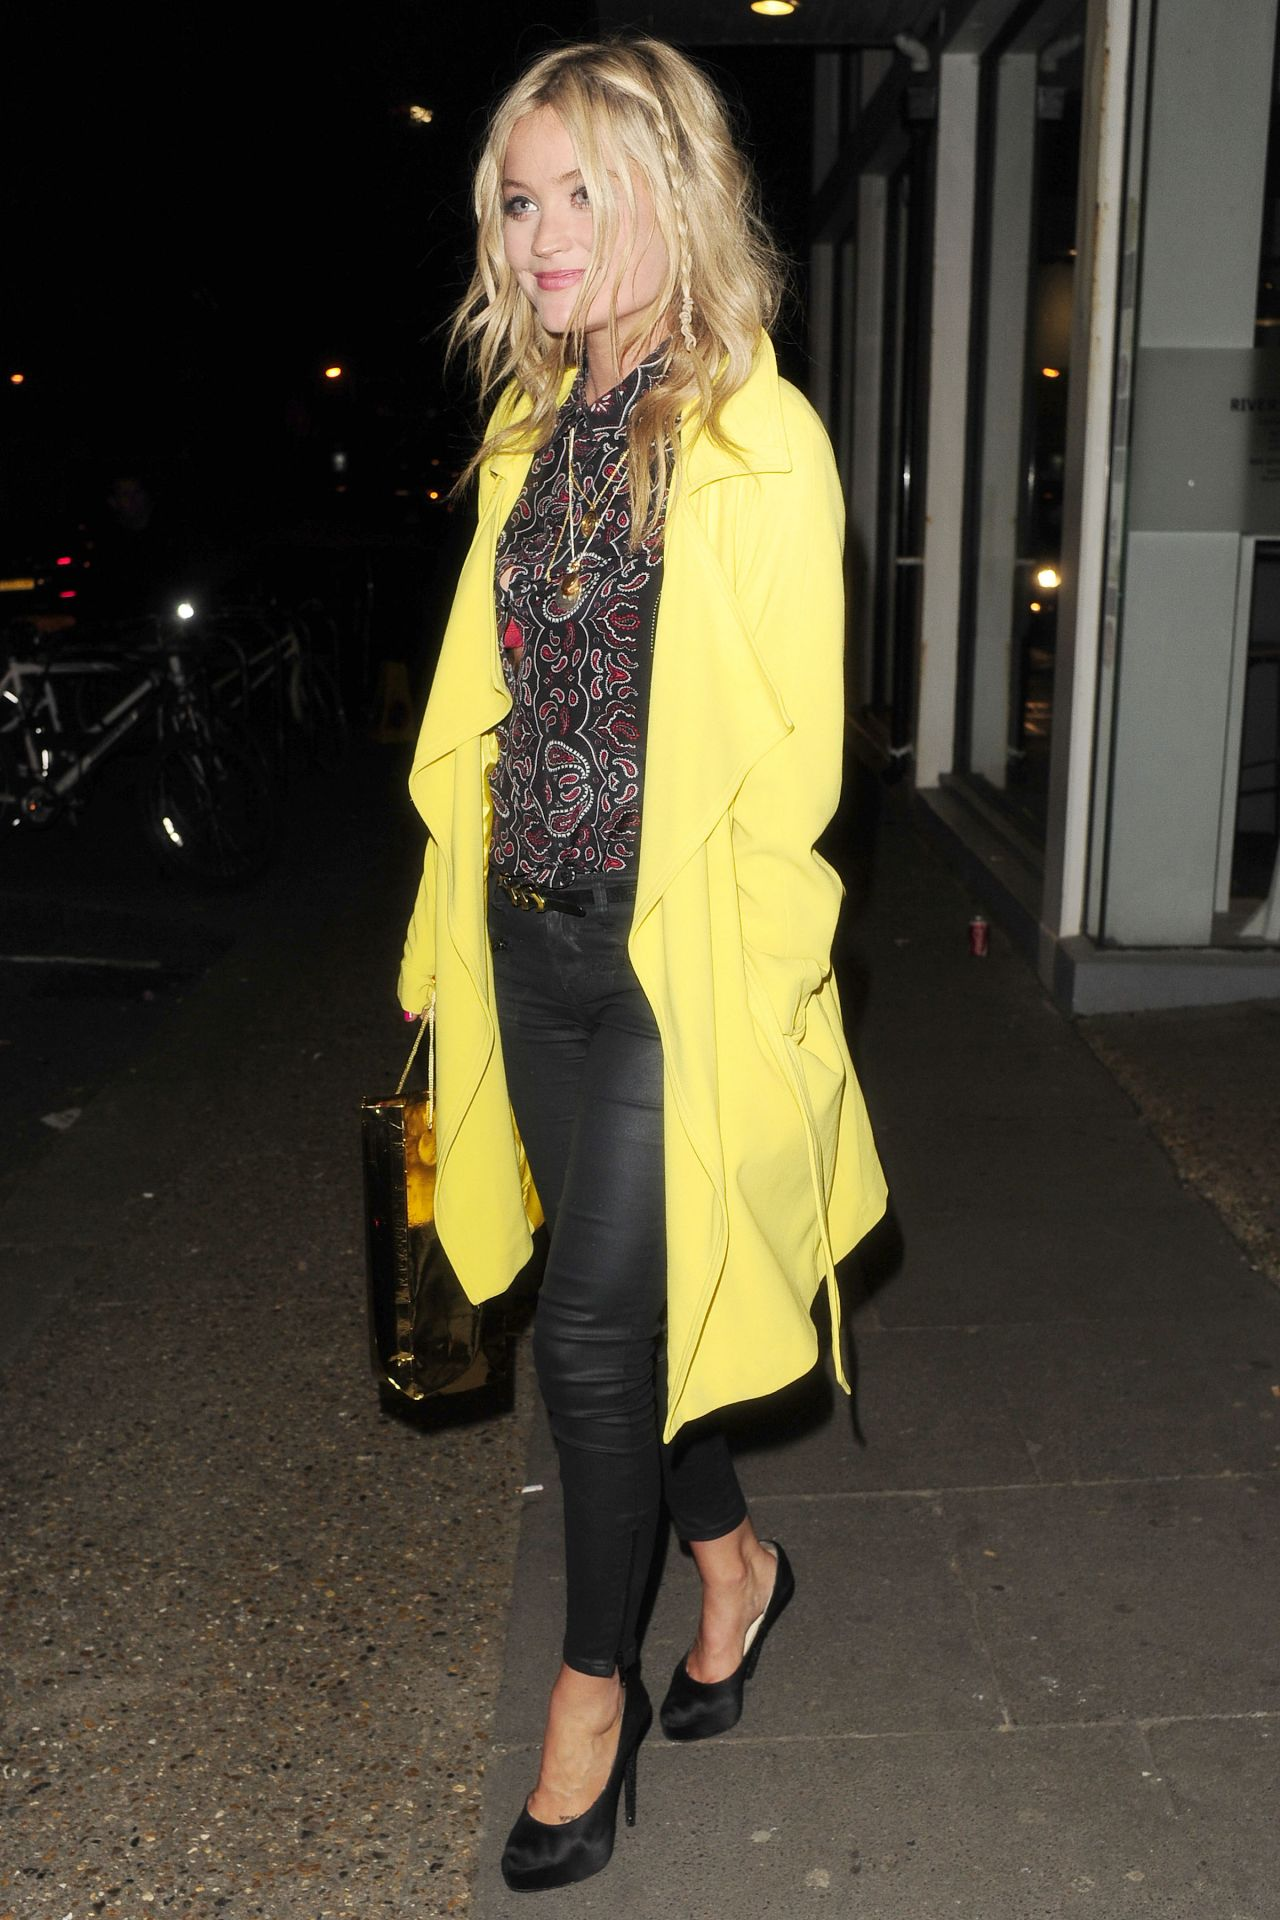 Laura Whitmore - Riverside Studios in London - April 2014